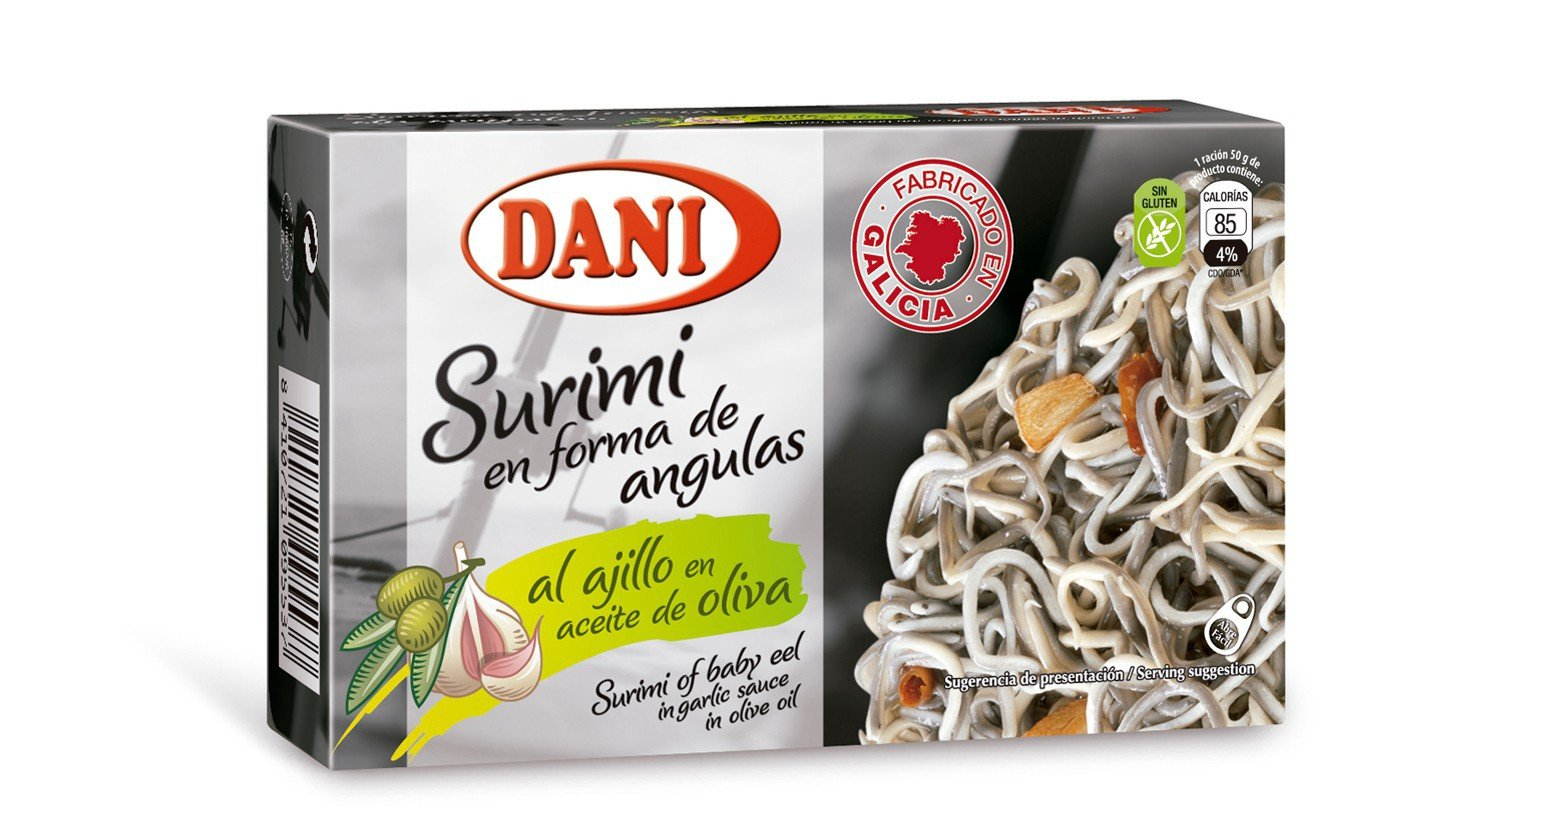 Surimi of Baby Eels 13 Pack in Garlic and Olive Sauce Gluten Free (Angulas, Eelbroods Surimi) by Dani (Image #1)